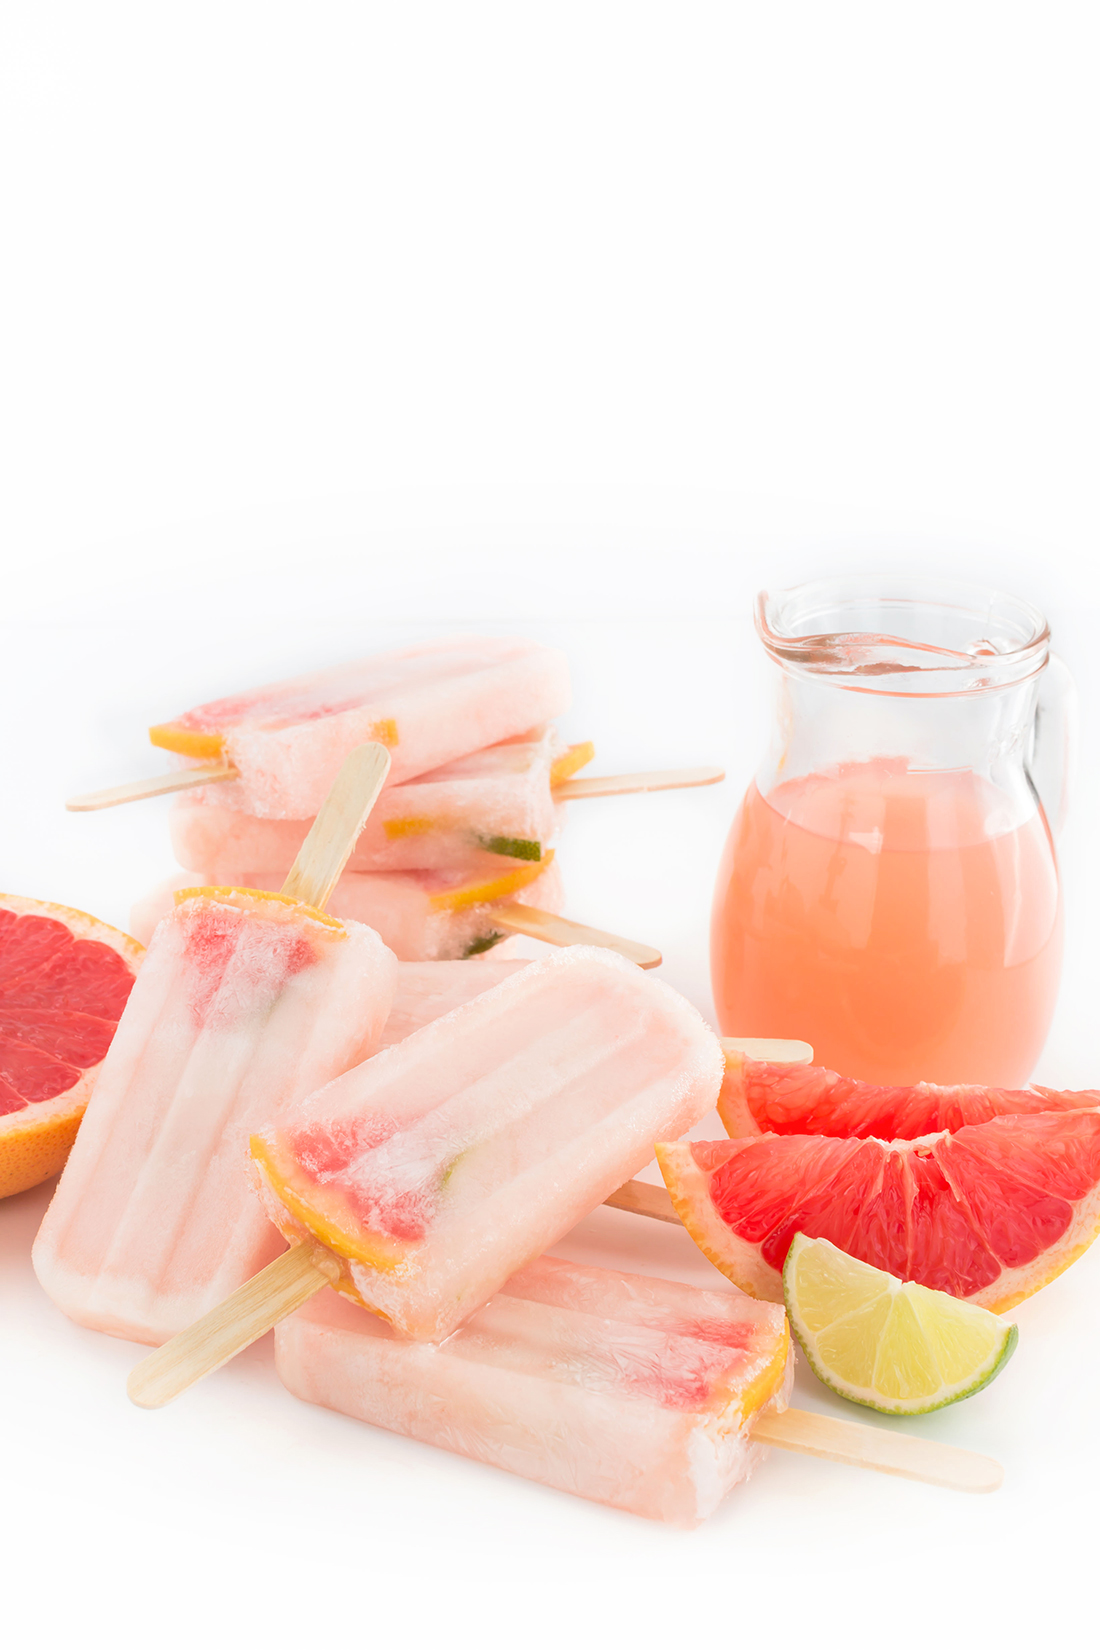 VEGAN 3 INGREDIENTS PINK GRAPEFRUIT POPSICLES - GHIACCIOLI al POMPELMO ROSA 3 ingredienti idratanti limonata al pompelmo